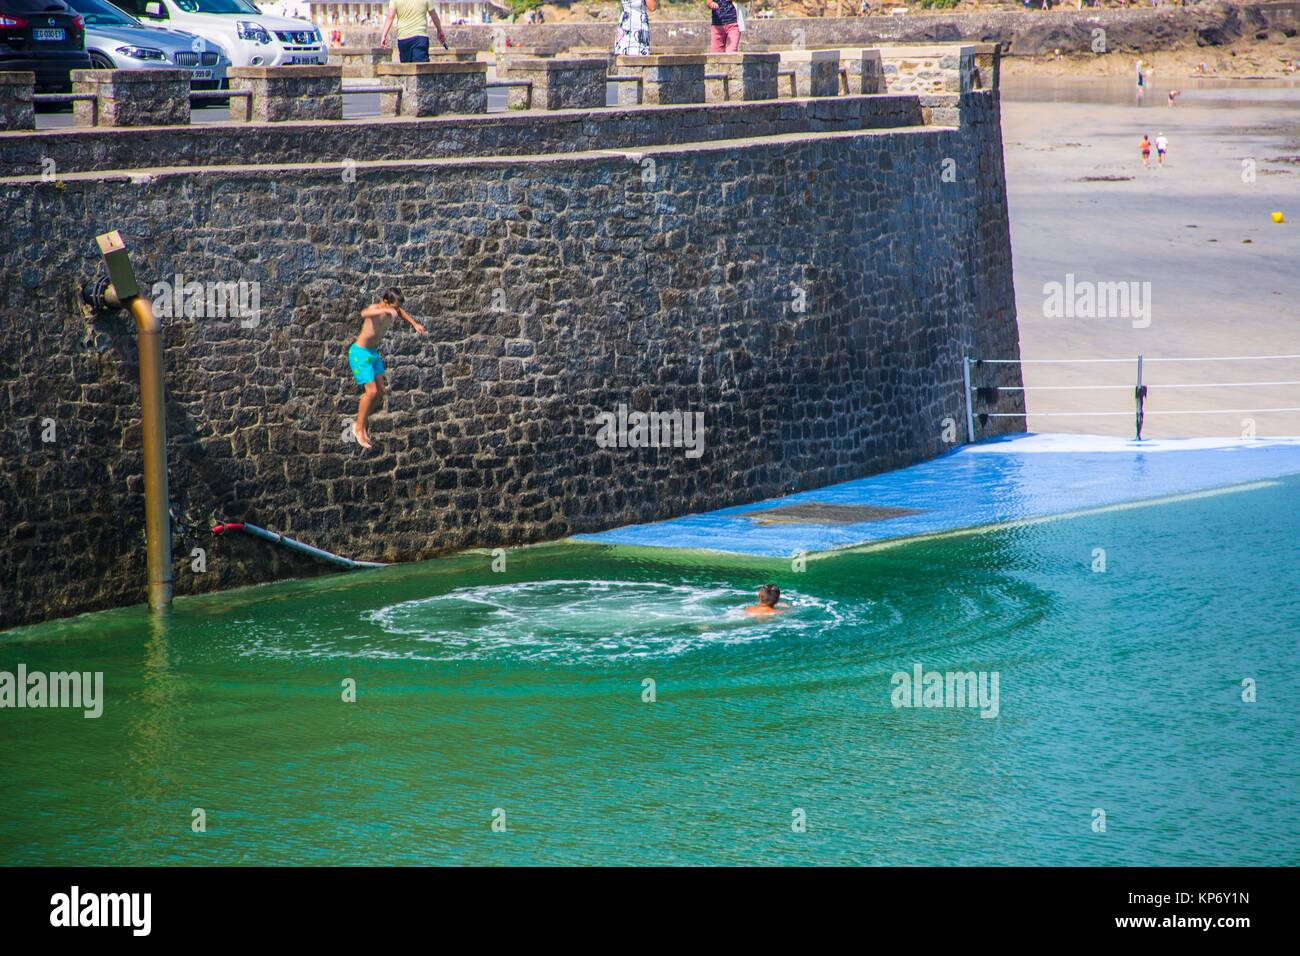 Lagoon like pool in the cote d´emeraude along the beach in Dinard, Brittany, France. We can see a teen boy - Stock Image